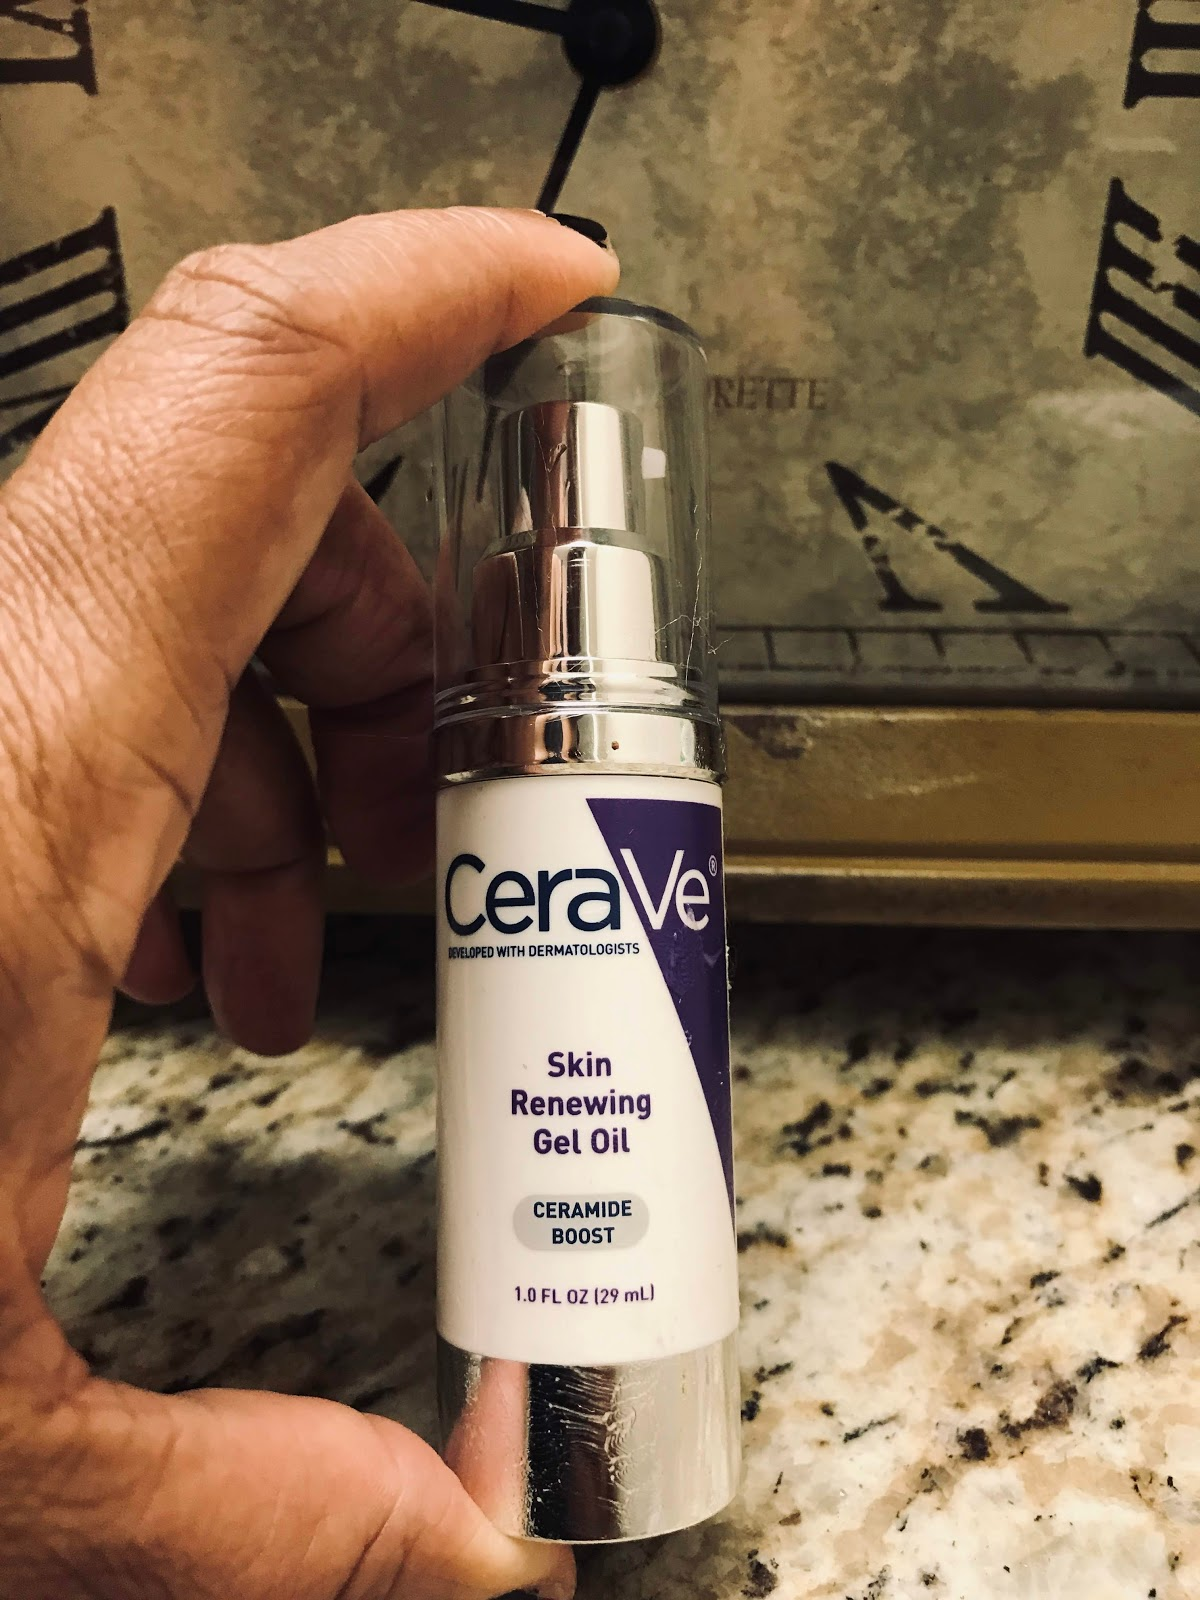 Image: Woman sharing her thoughts and reviews on the new Cerave skin renewing gel oil. Seen first on Bits and Babbles Blog.